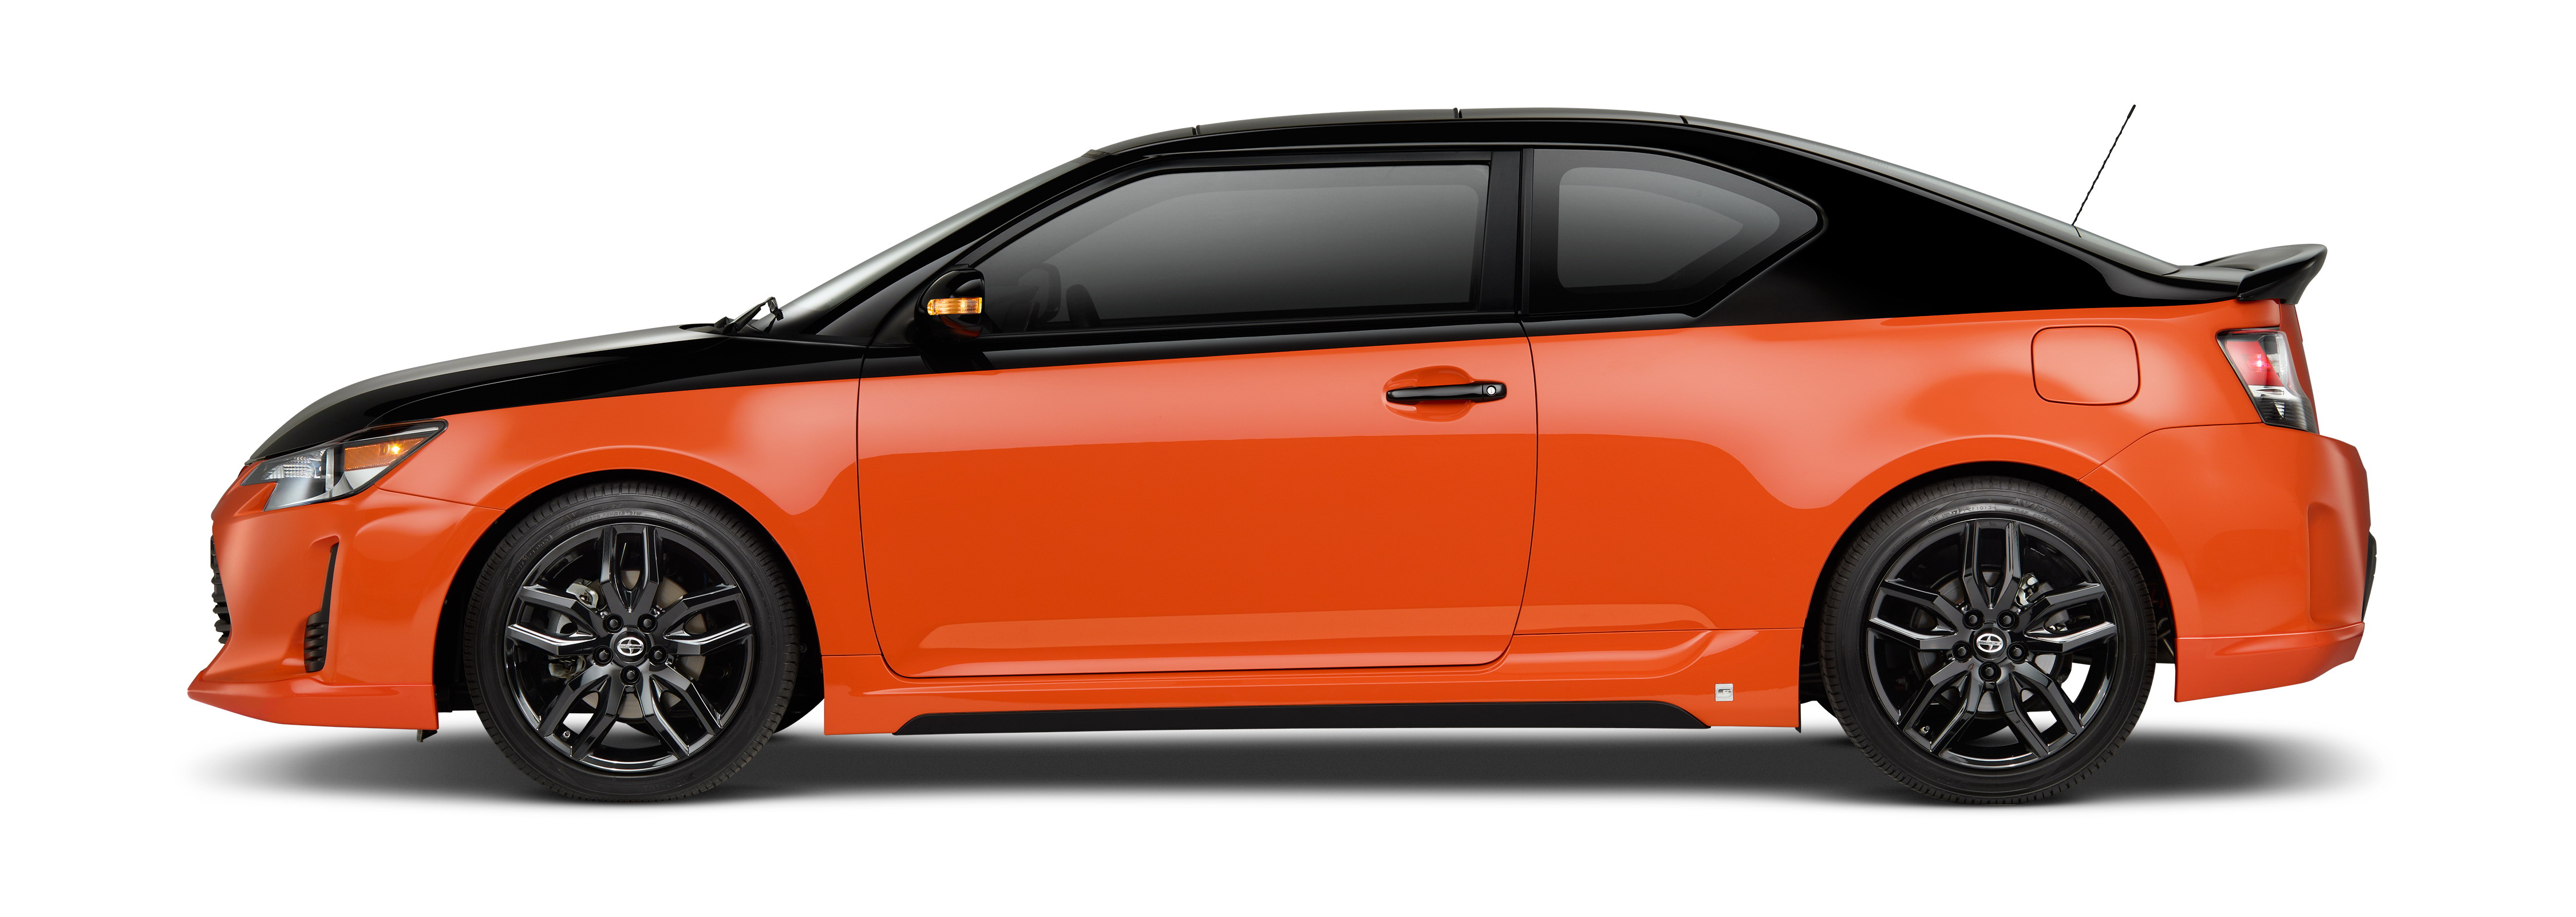 2015 Scion Tc Release Series 9 0 Review Top Speed